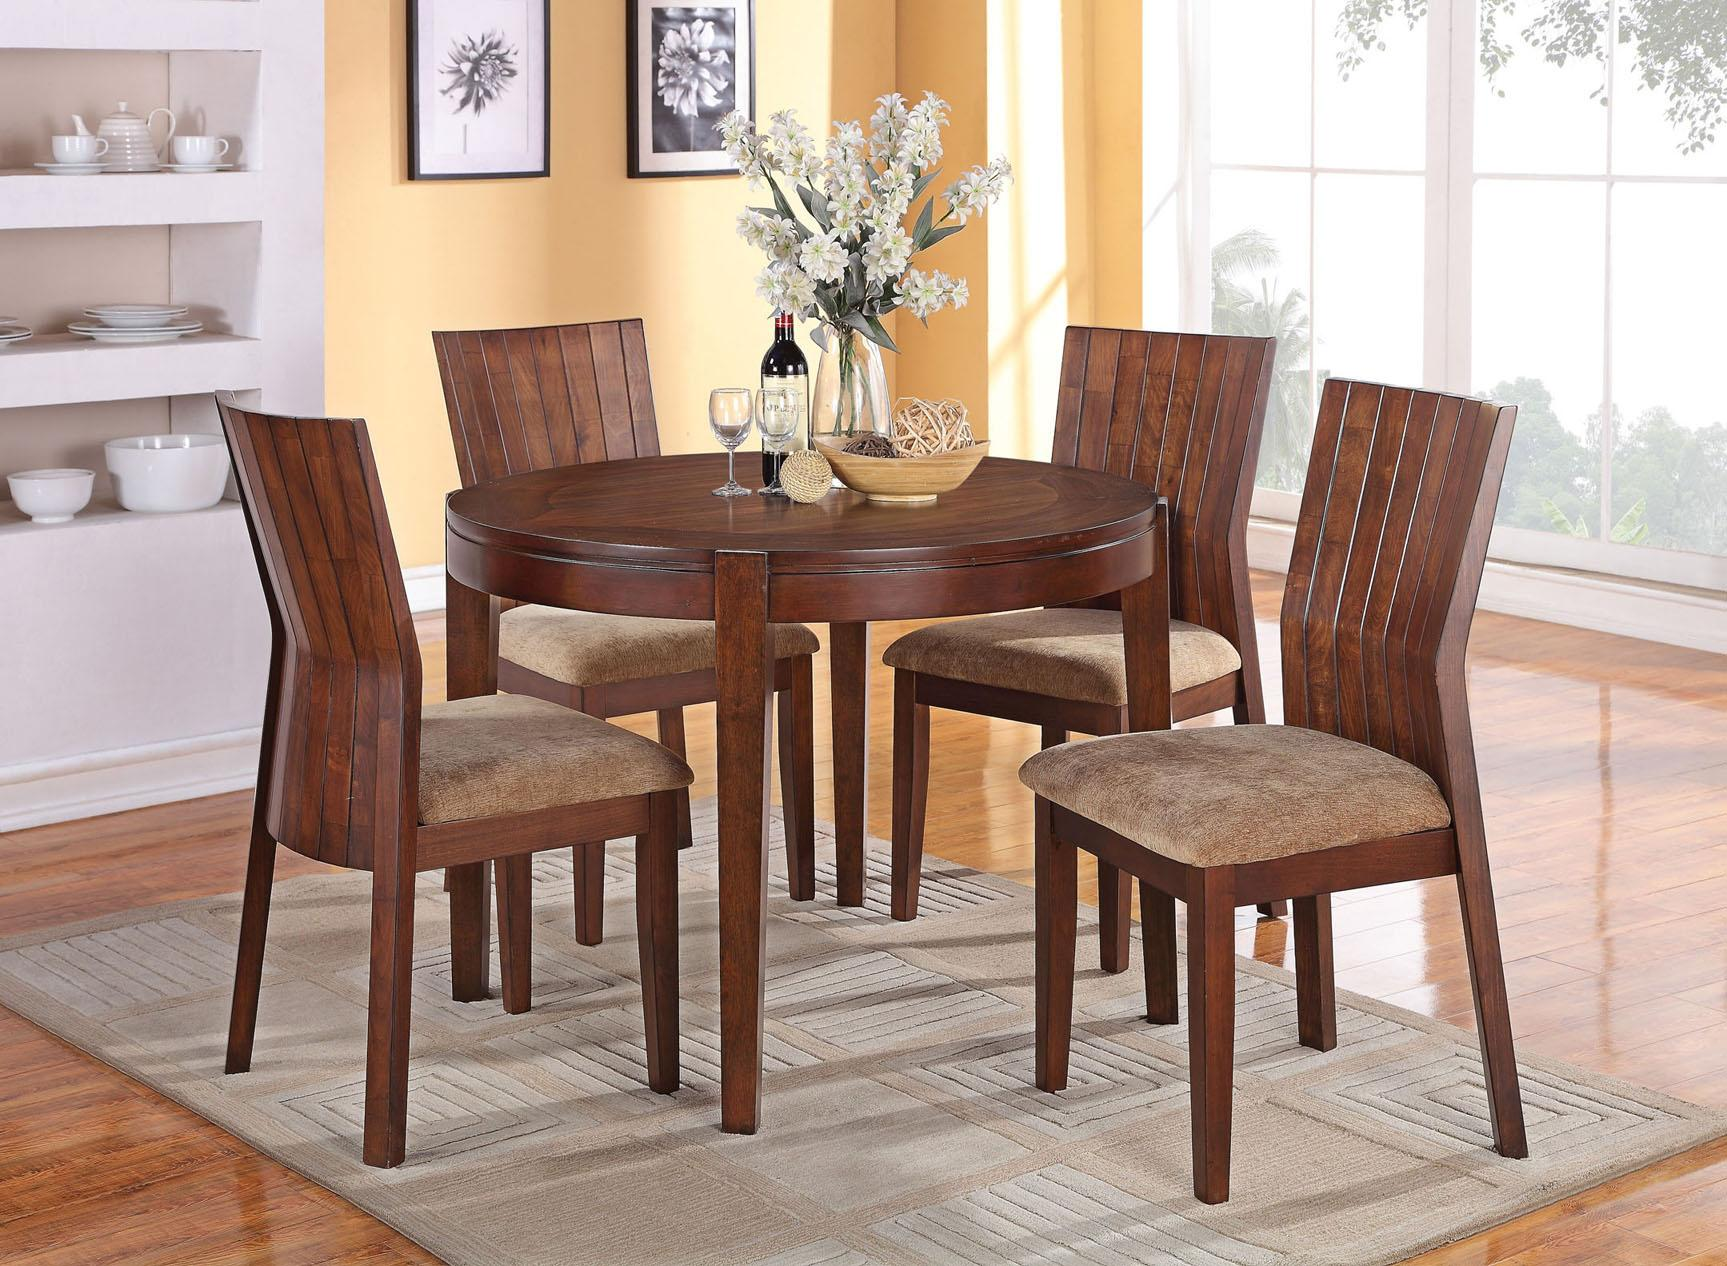 Acme Furniture Mauro Round Dining Table and Chairs - Item Number: 70542+70546